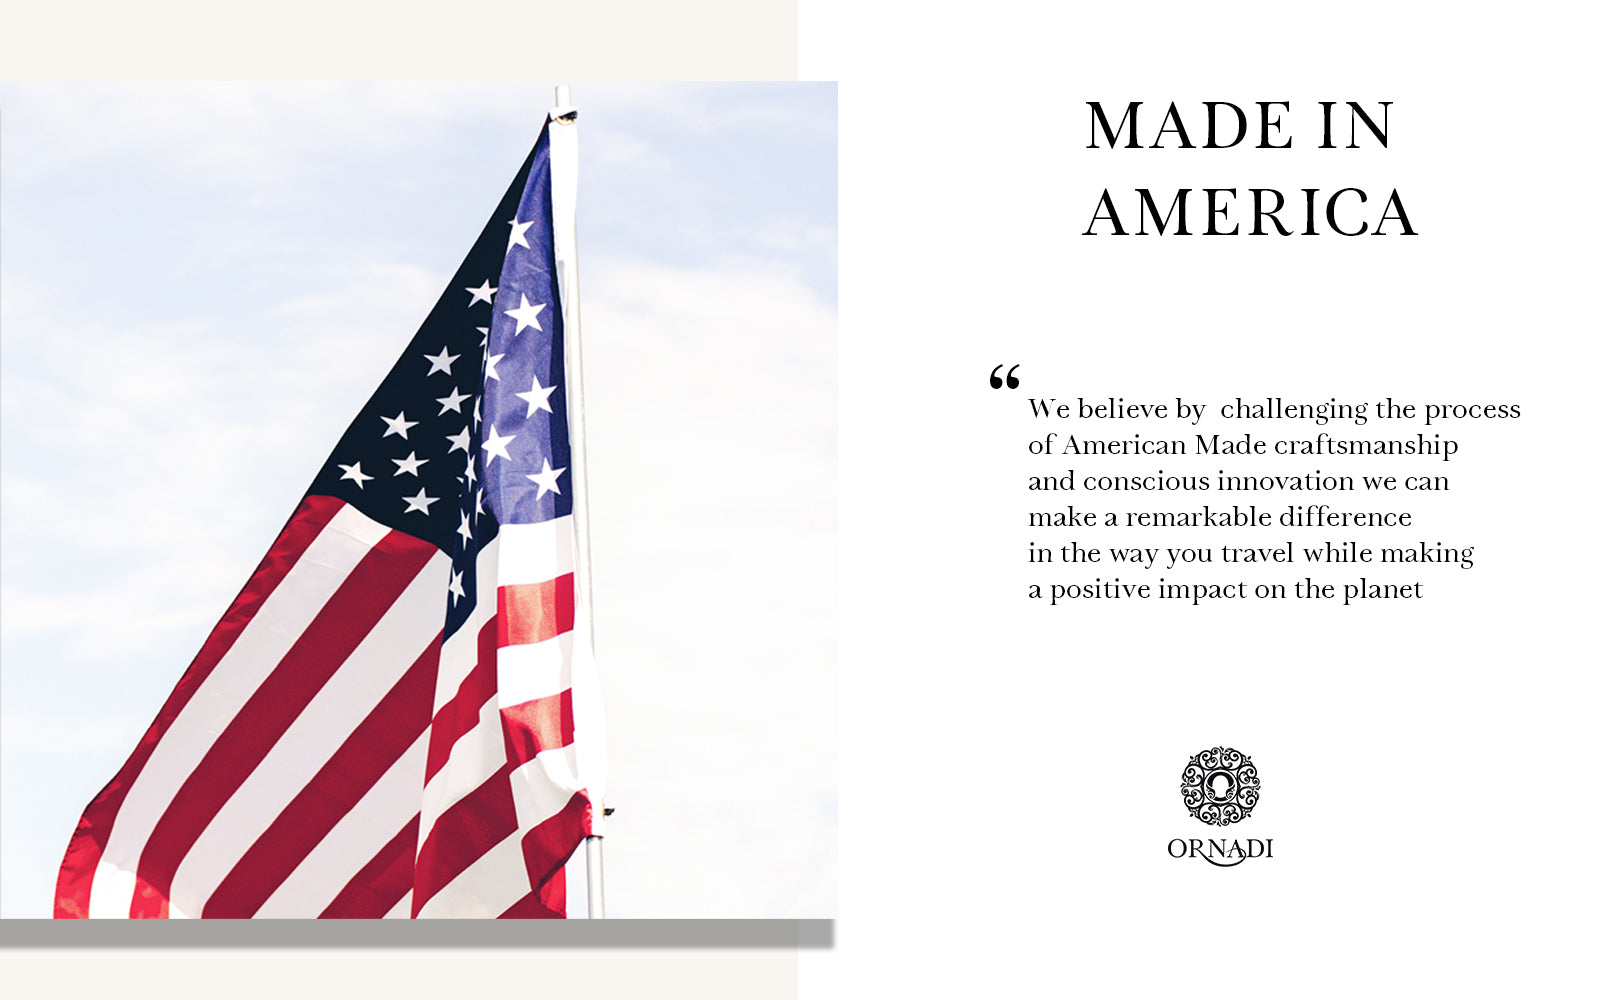 made in america gym bag